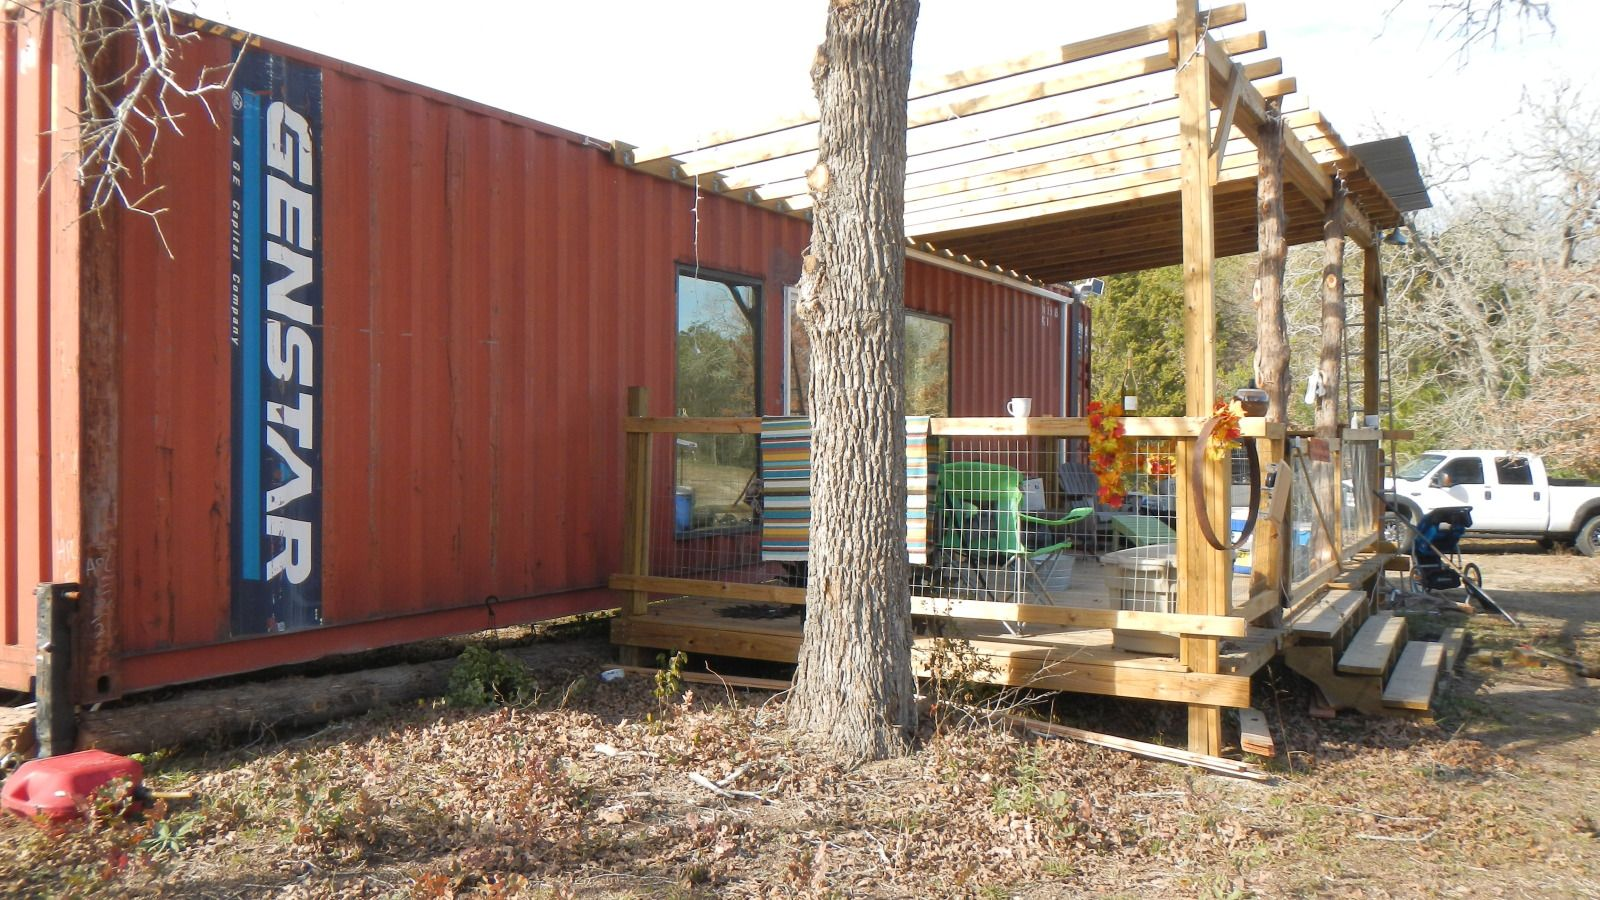 shipping container homes 40ft shipping container family home wendy bowman fords prarie. Black Bedroom Furniture Sets. Home Design Ideas